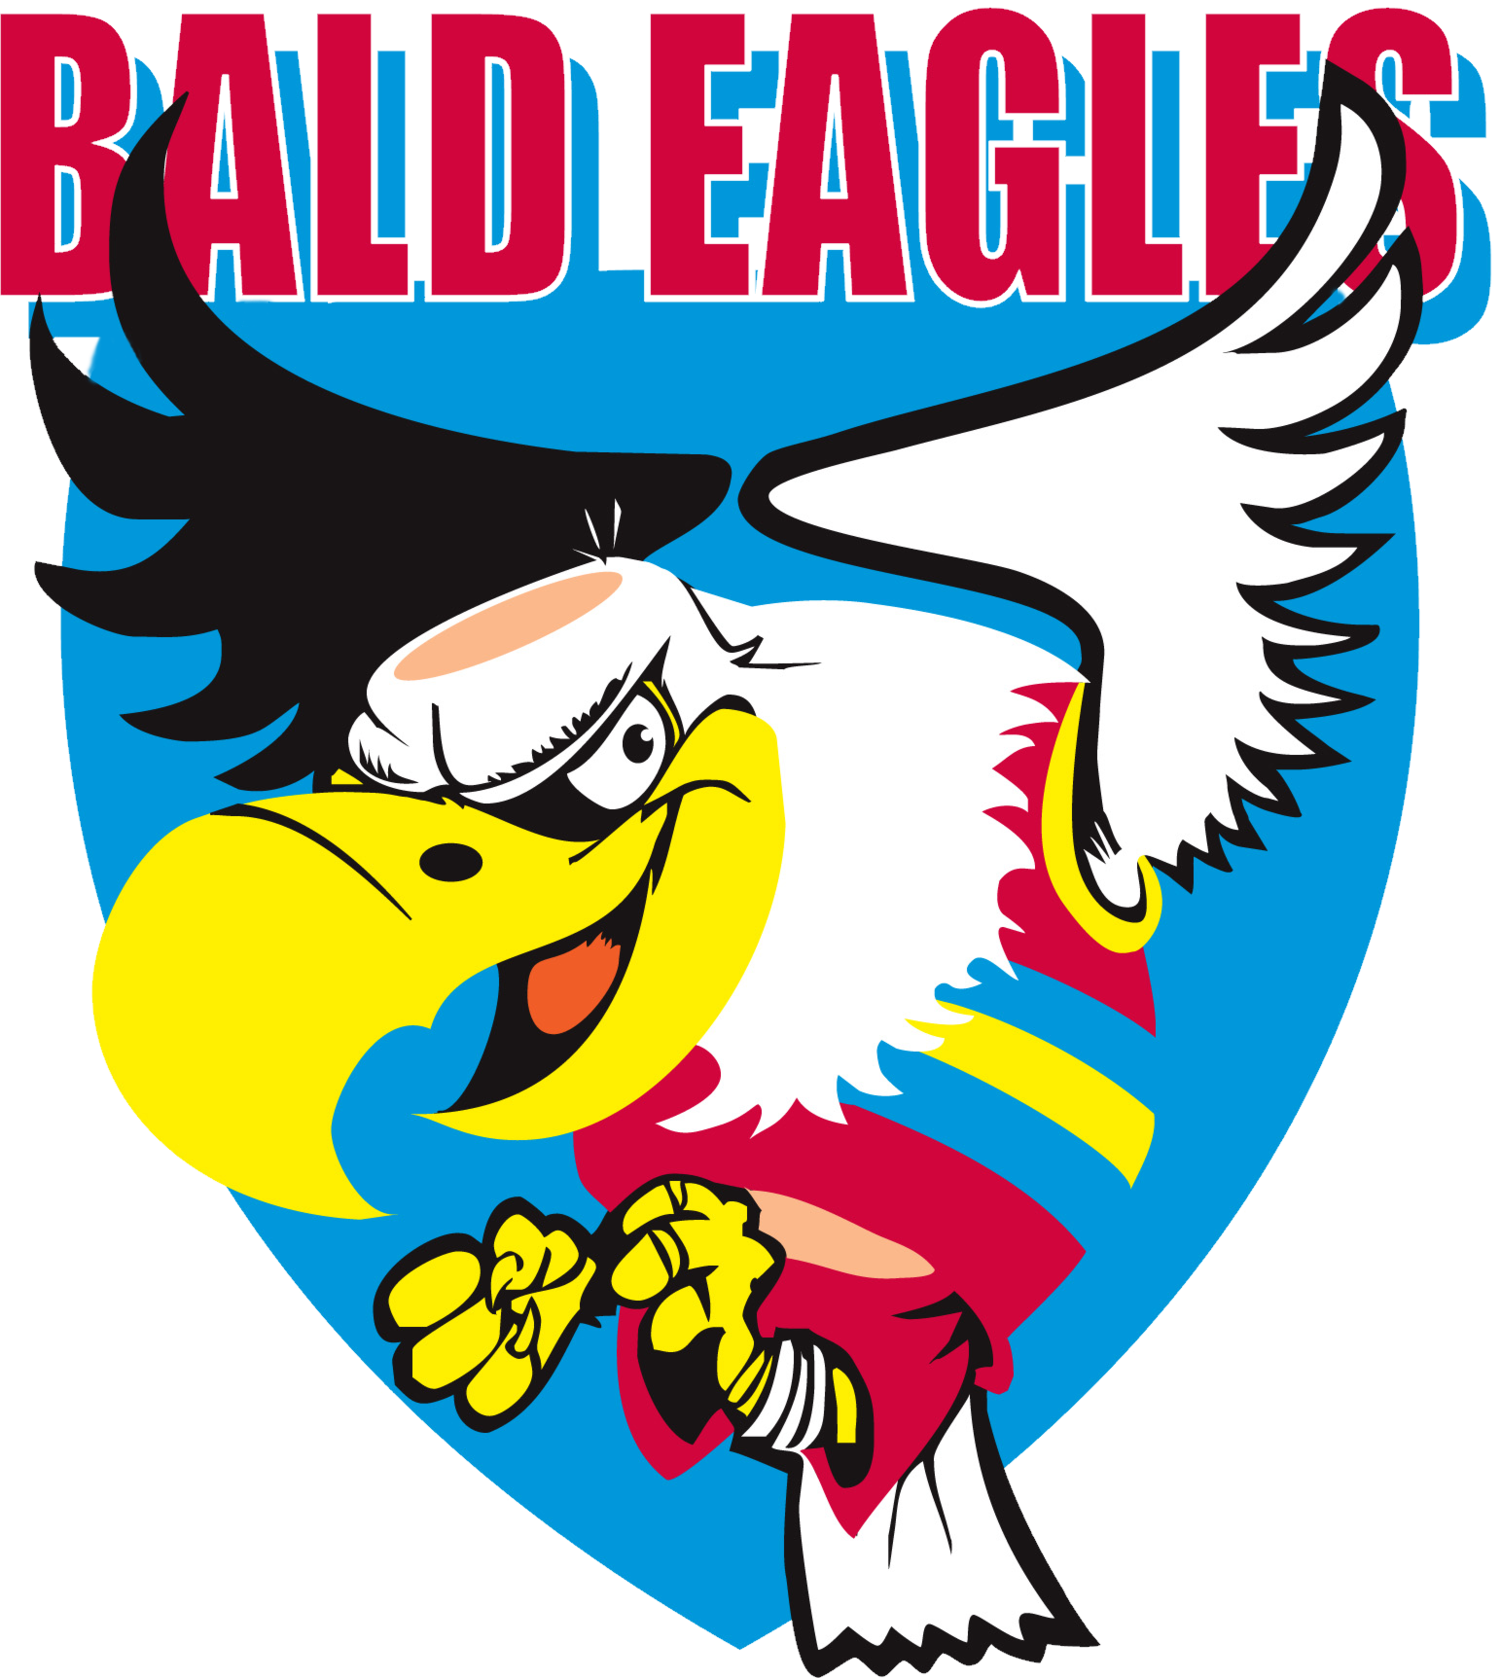 Marcellin Bald Eagles Football Club